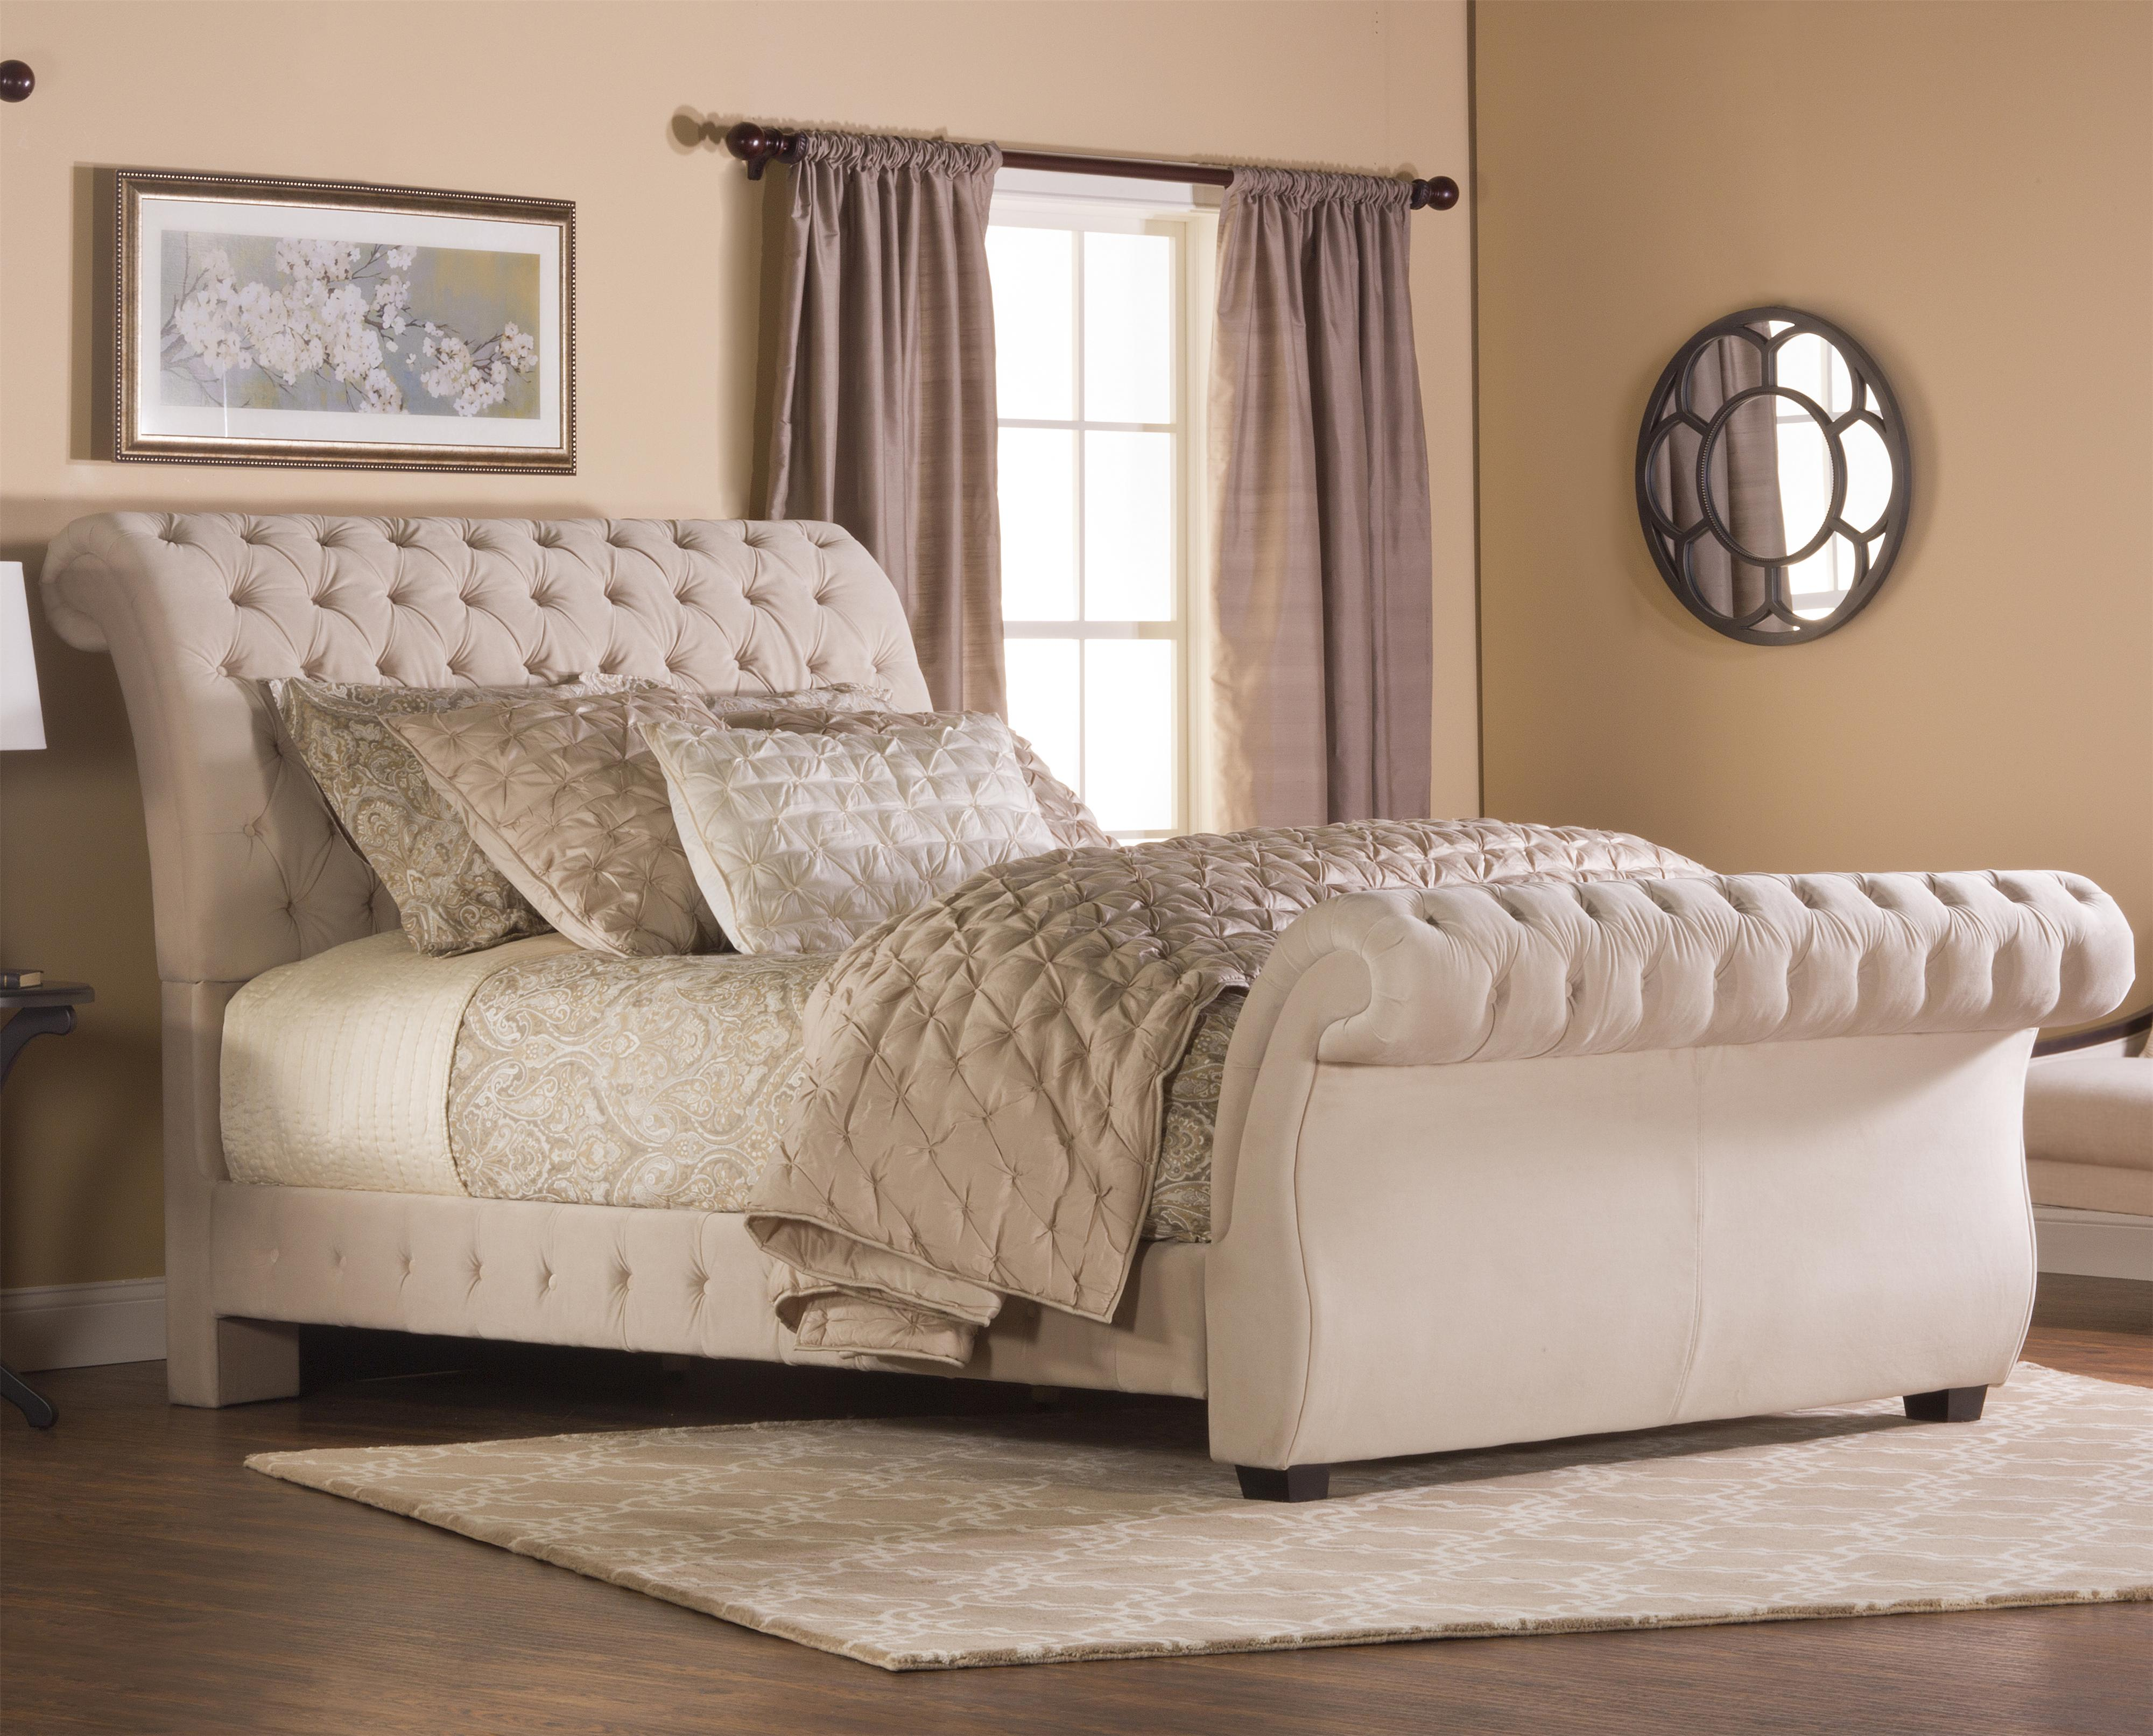 Hillsdale upholstered beds king bombay upholstered bed for Upholstered beds